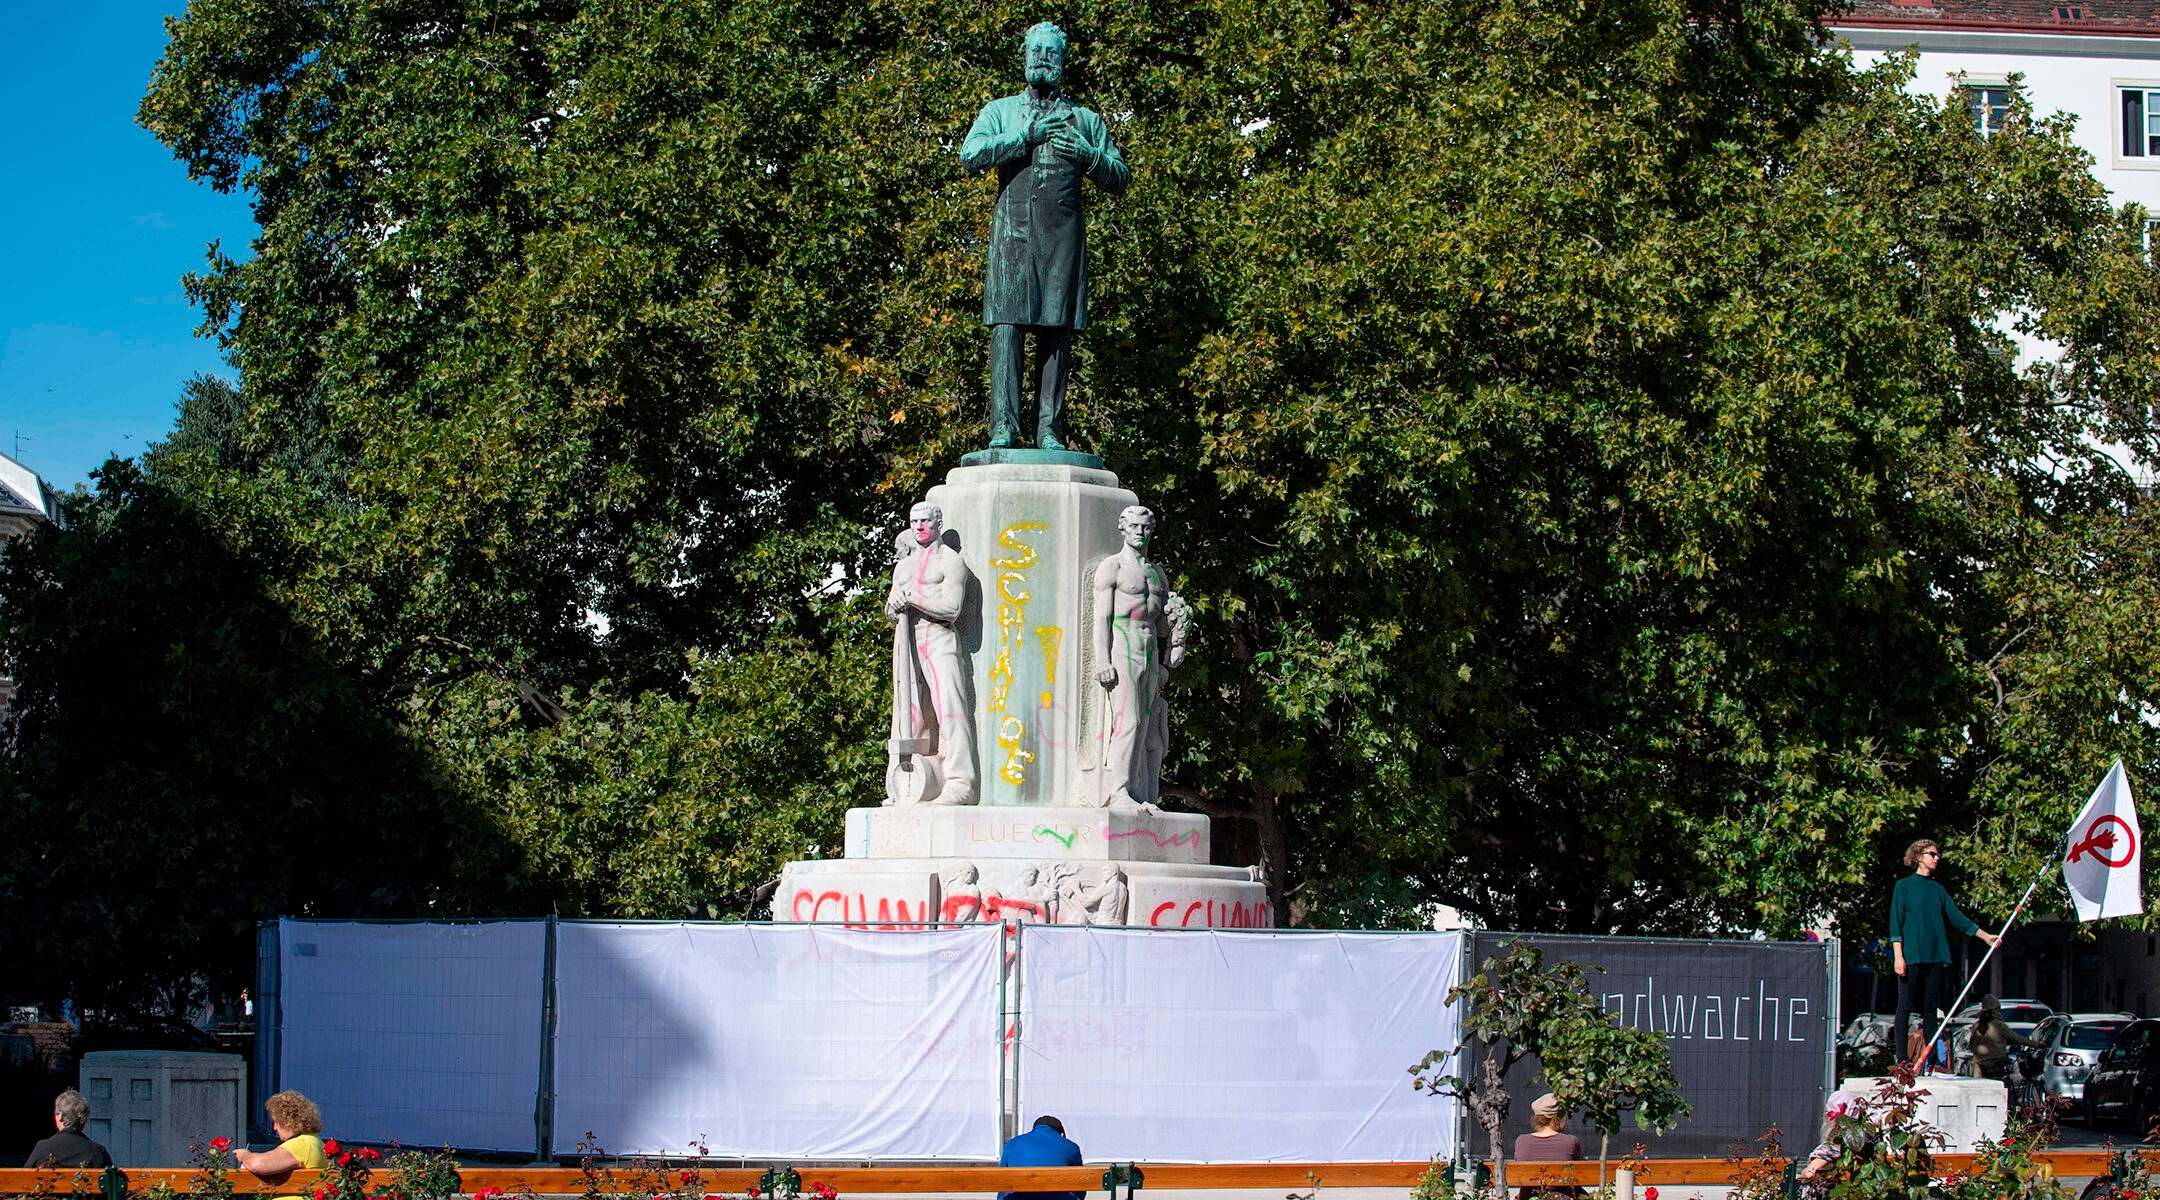 A fence surrounds the the statue of the anti-Semitic former mayor of Vienna Karl Lueger in Vienna, Austria on October 6, 2020(Joe Klamar/AFP via Getty Images)